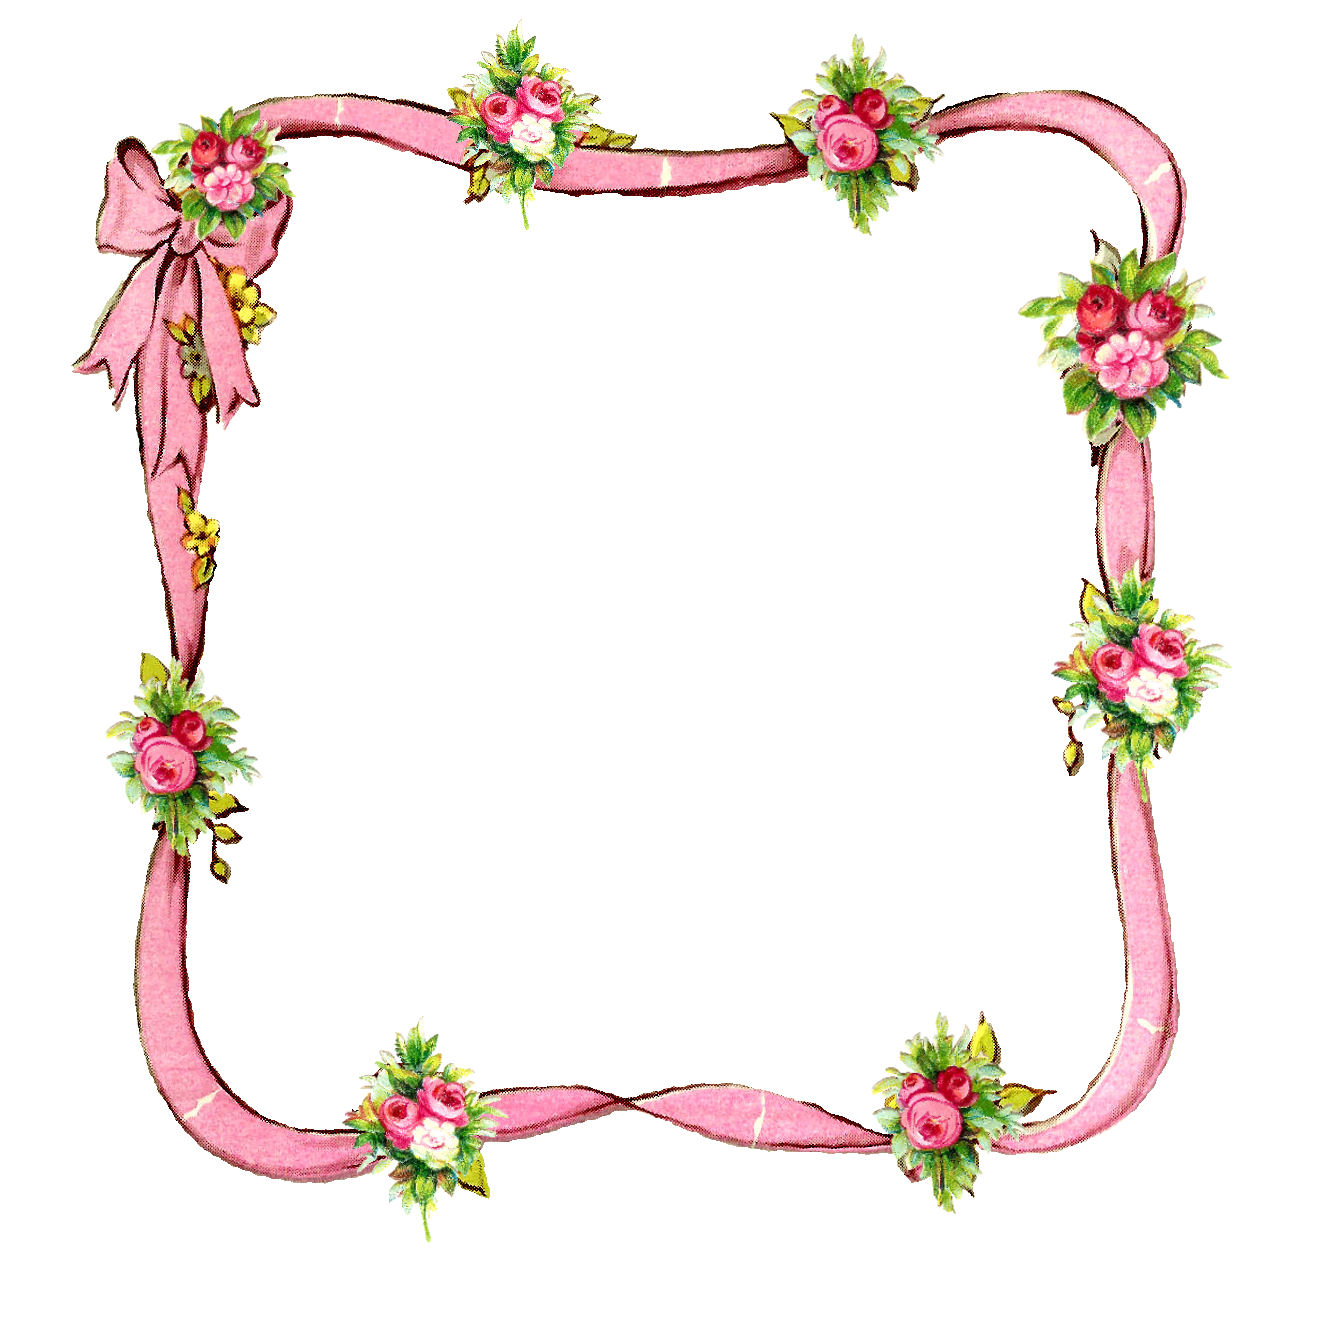 graphic relating to Free Printable Graphics identify The Graphics Monarch: Cost-free Printable Do it yourself Rose Ribbon Electronic